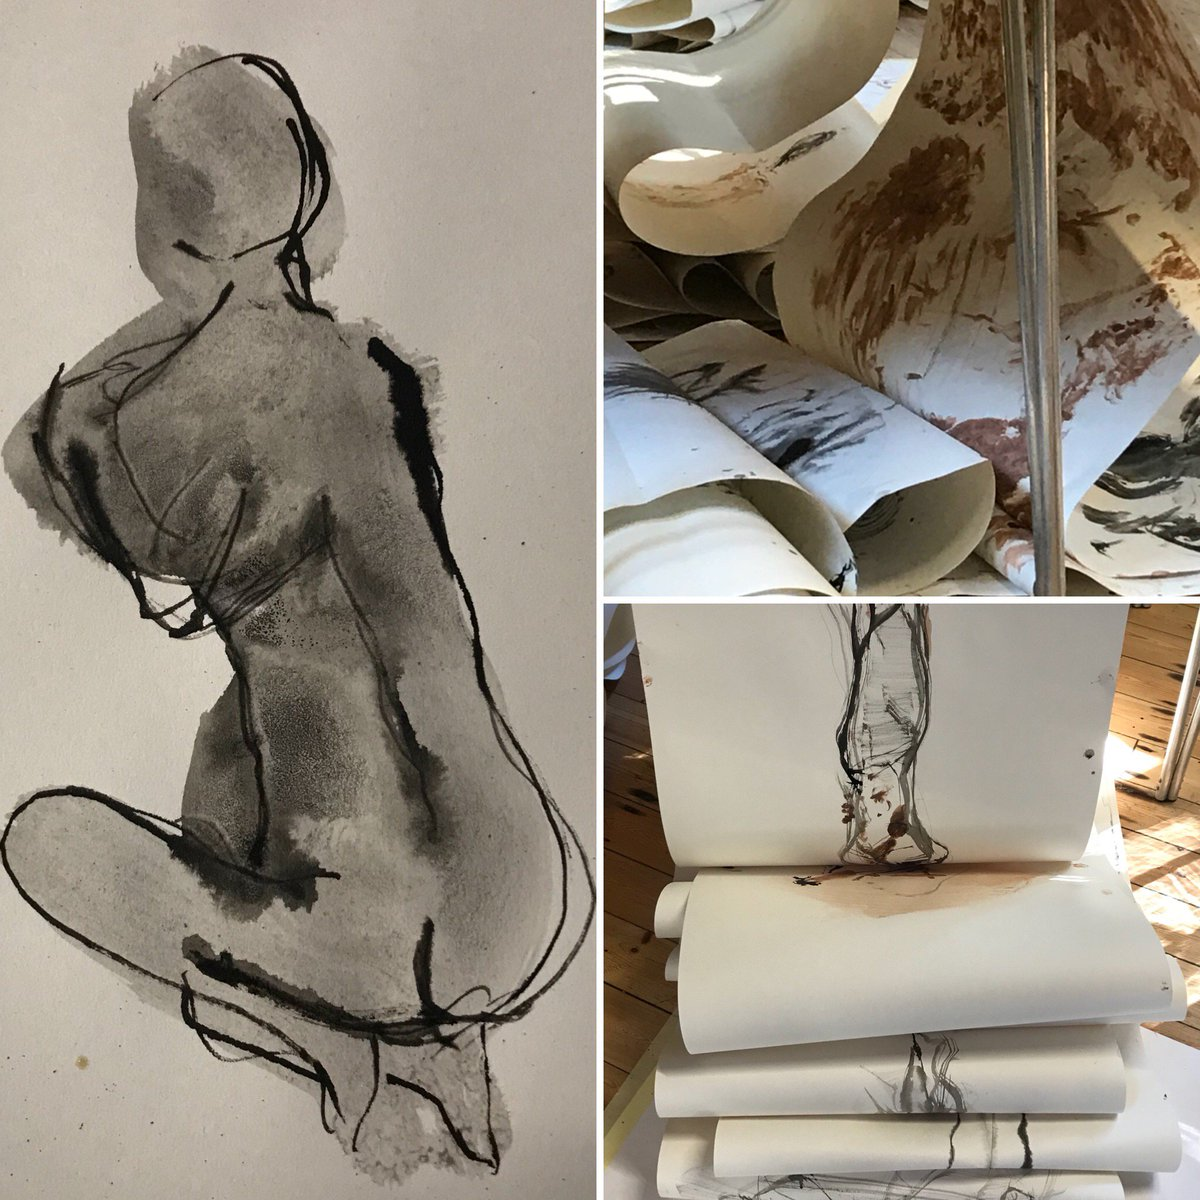 ...summer holidays over, time to re-absorb myself into drawing with touch, music and movement #findthekeytoyourlife #creativelife #creativeinspiration #lifedrawing #humanity #pleasureofink #bodilyart #artwithmeaning #emergingartistpic.twitter.com/R8CDmjGNkD